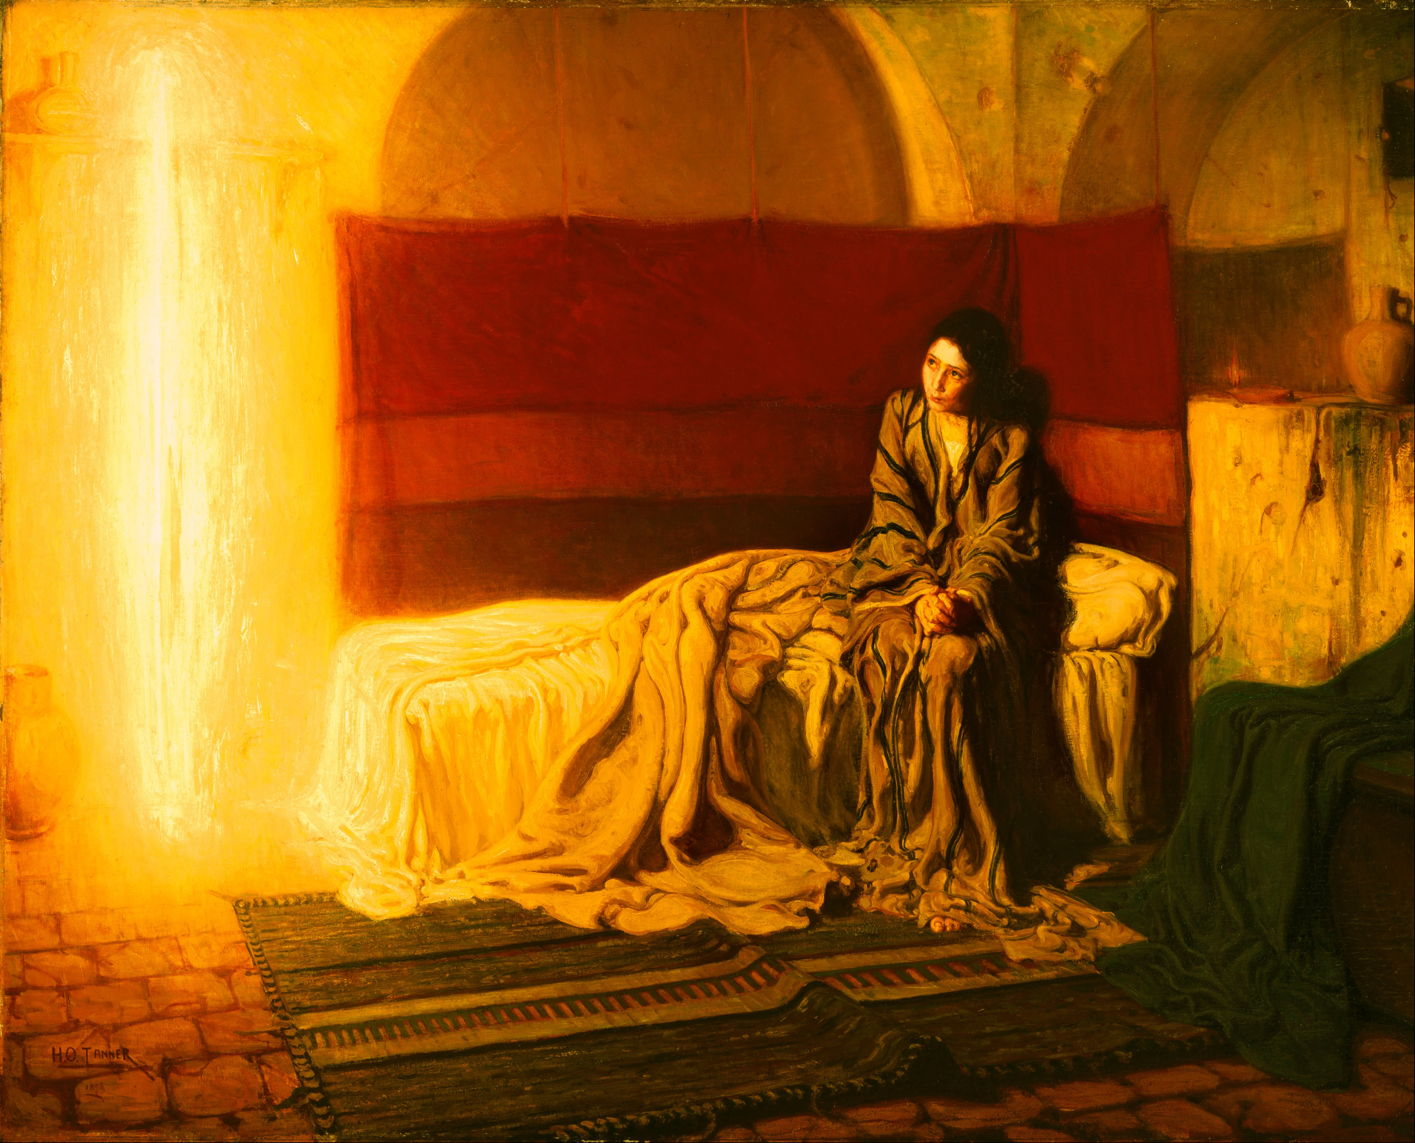 Henry Ossawa Tanner (1859u20131937), The Annunciation (1898), Oil On Canvas,  144.9 X 181.1 Cm, Philadelphia Museum Of Art, Philadelphia, PA. Wikimedia  Commons.